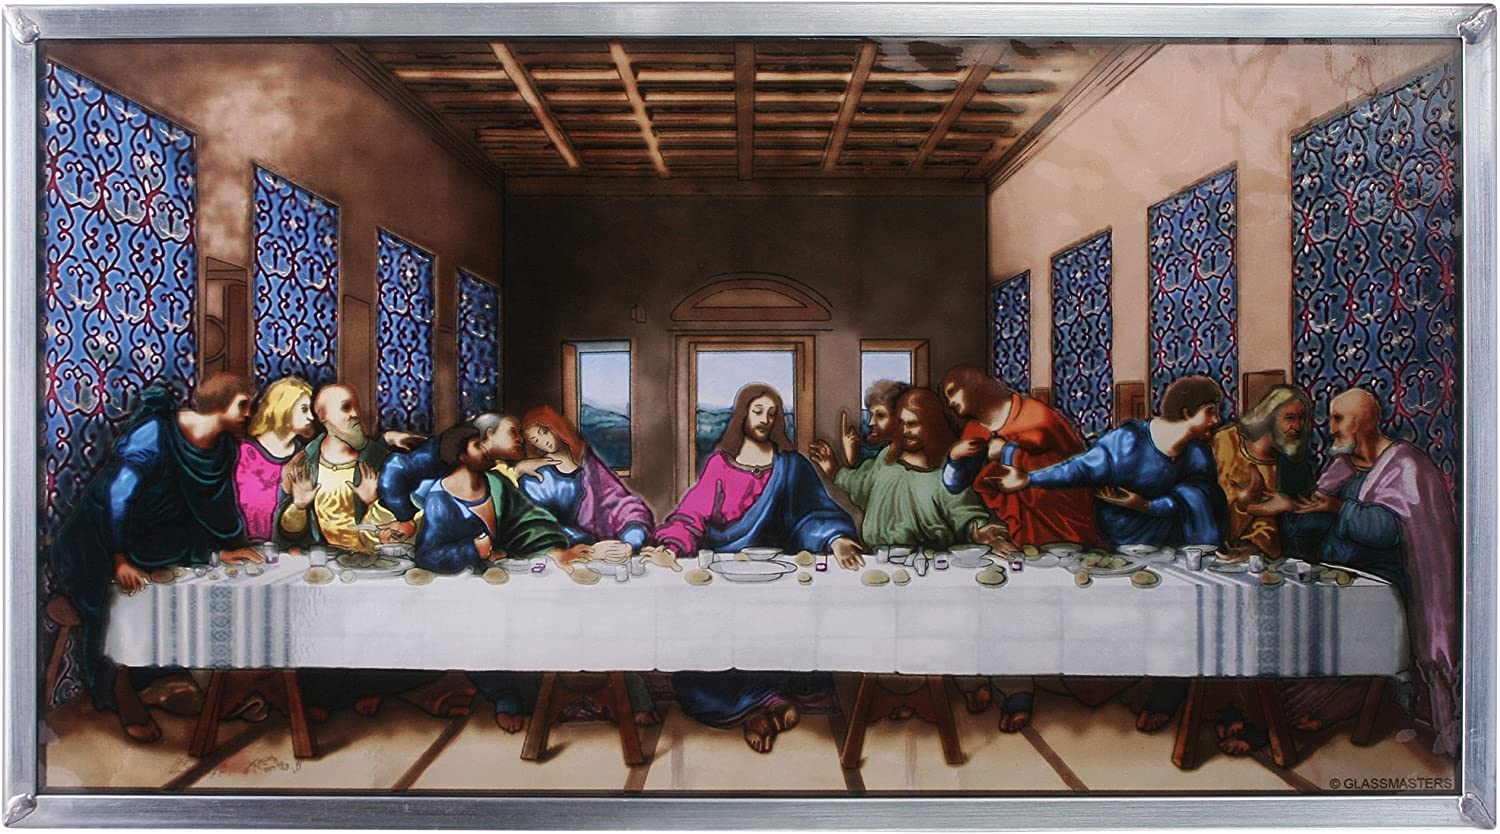 Stained Glass Panel - Da Vinci The Last Supper Stained Glass Window Hangings - Art Glass Window Treatments